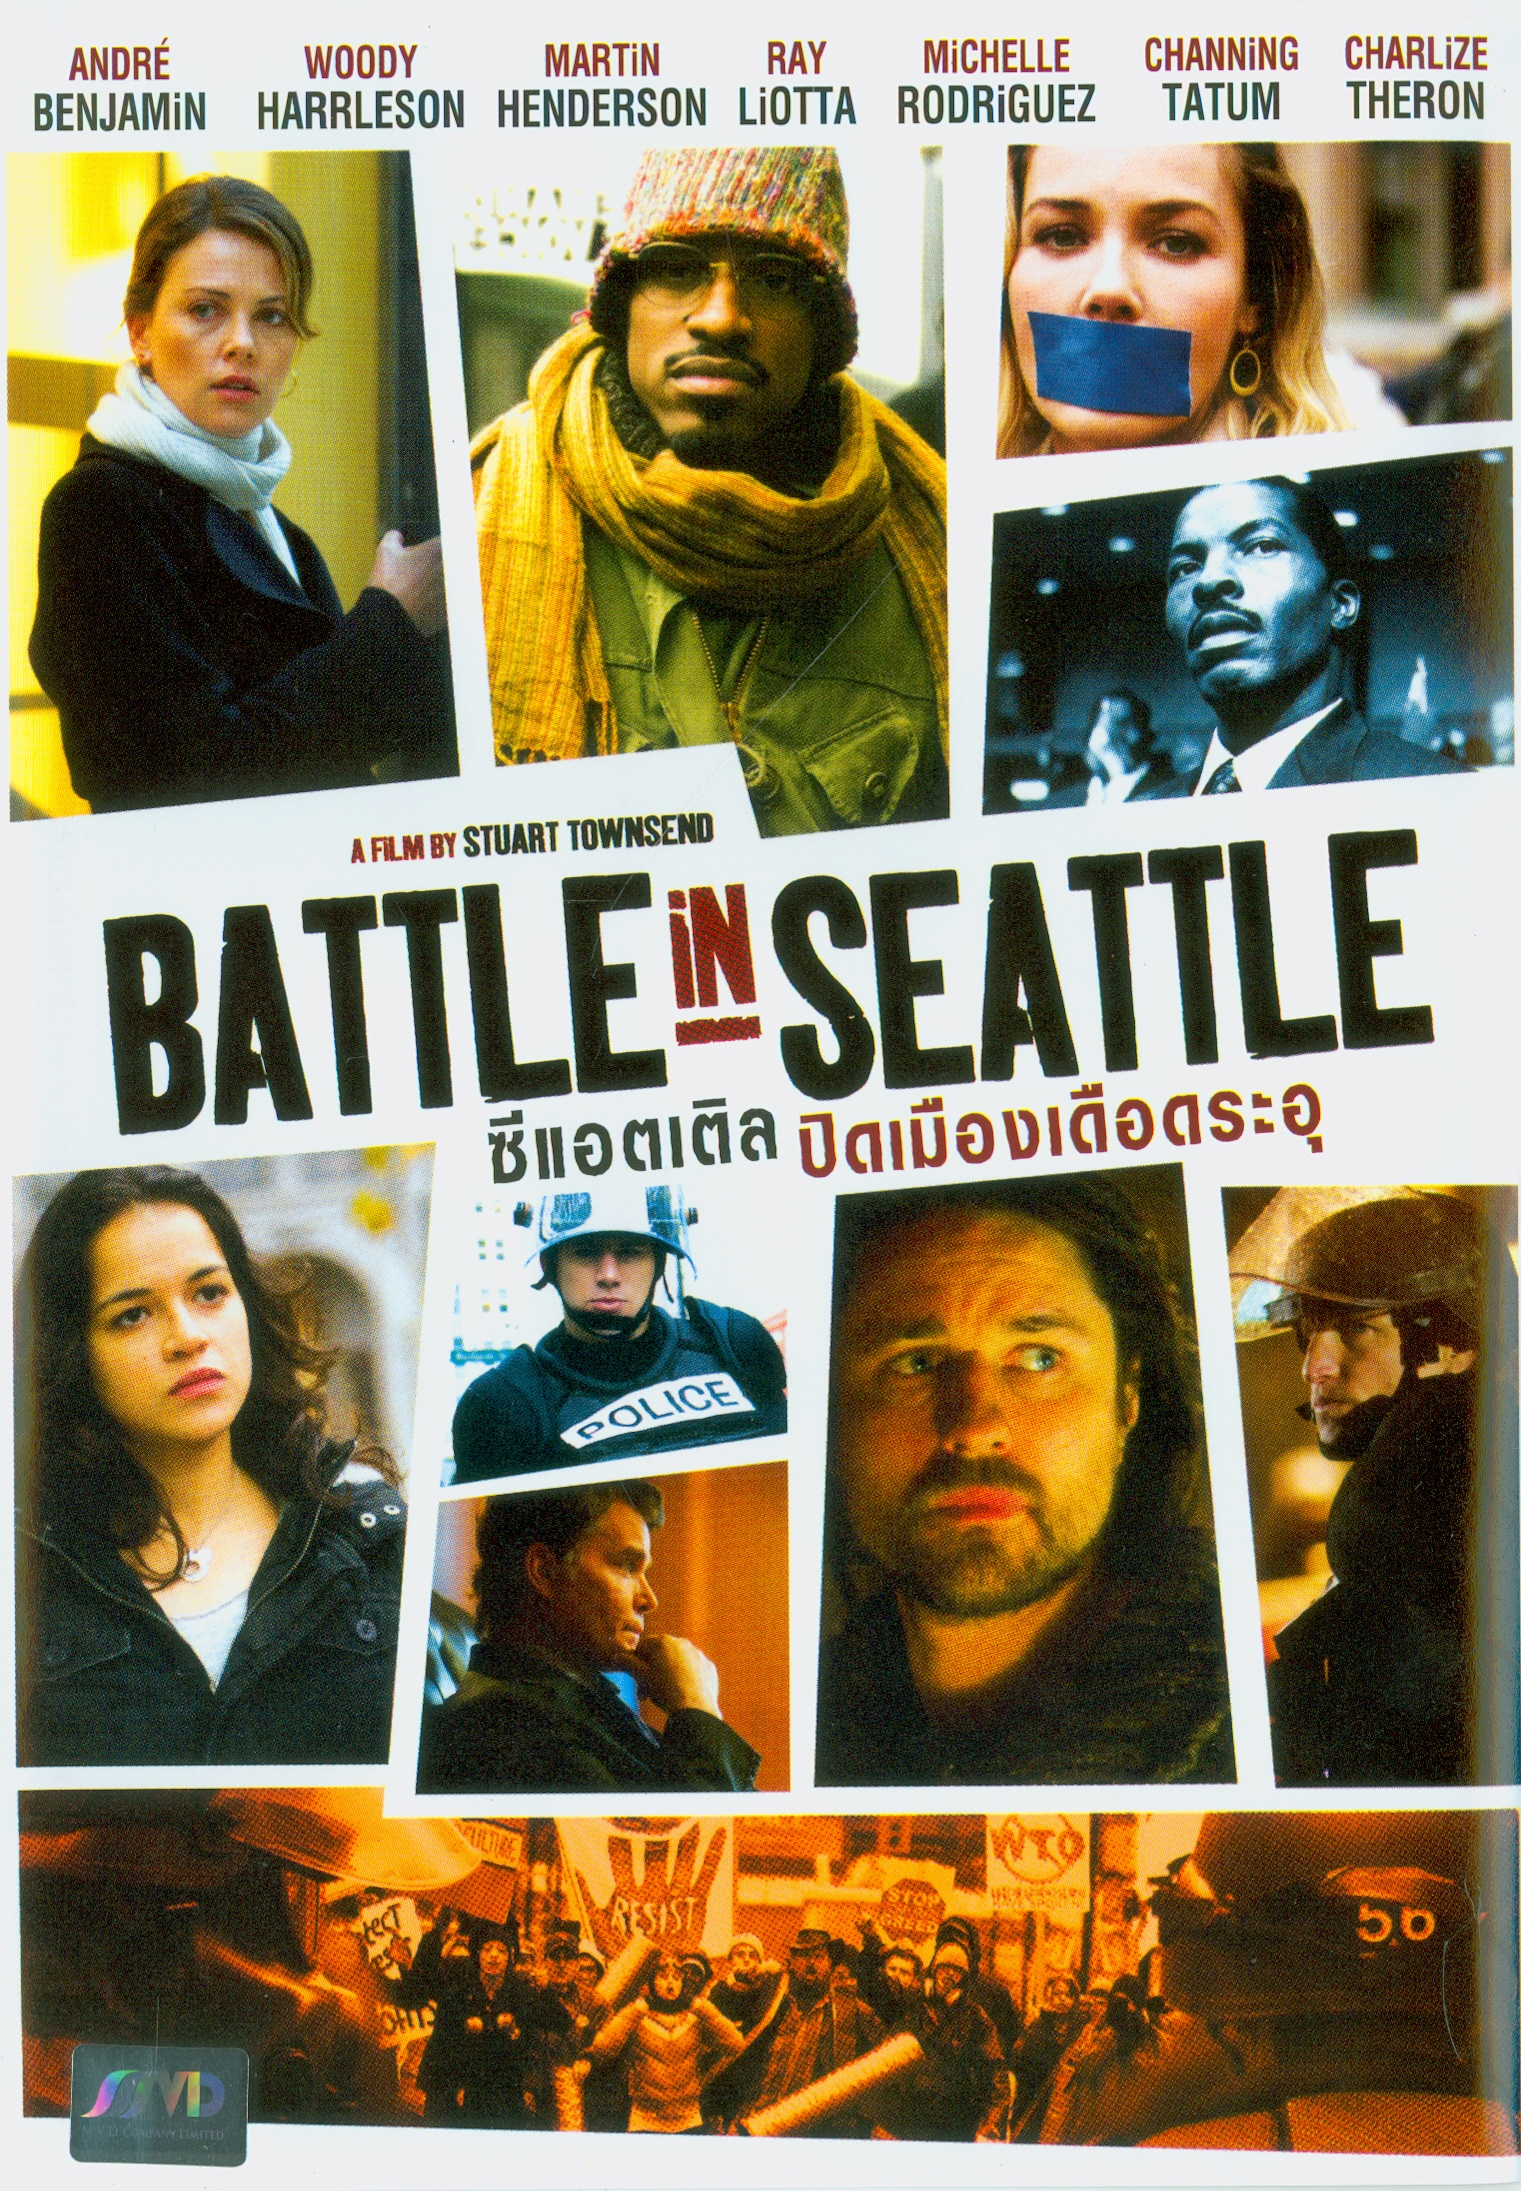 Battle in Seattle[videorecording] /Redwood Palms Releasing presents ; an Insight Film Studios, Remstar and Redwood Palms production ; Hyde Park International ; in association with Proud Mary Entertainment, Hyde Park Entertainment, 120DB Films, Firstar Films, and Grosvenor Park Media ; a film by Stuart Townsend||ซีแอตเติล ปิดเมืองเดือดระอุ